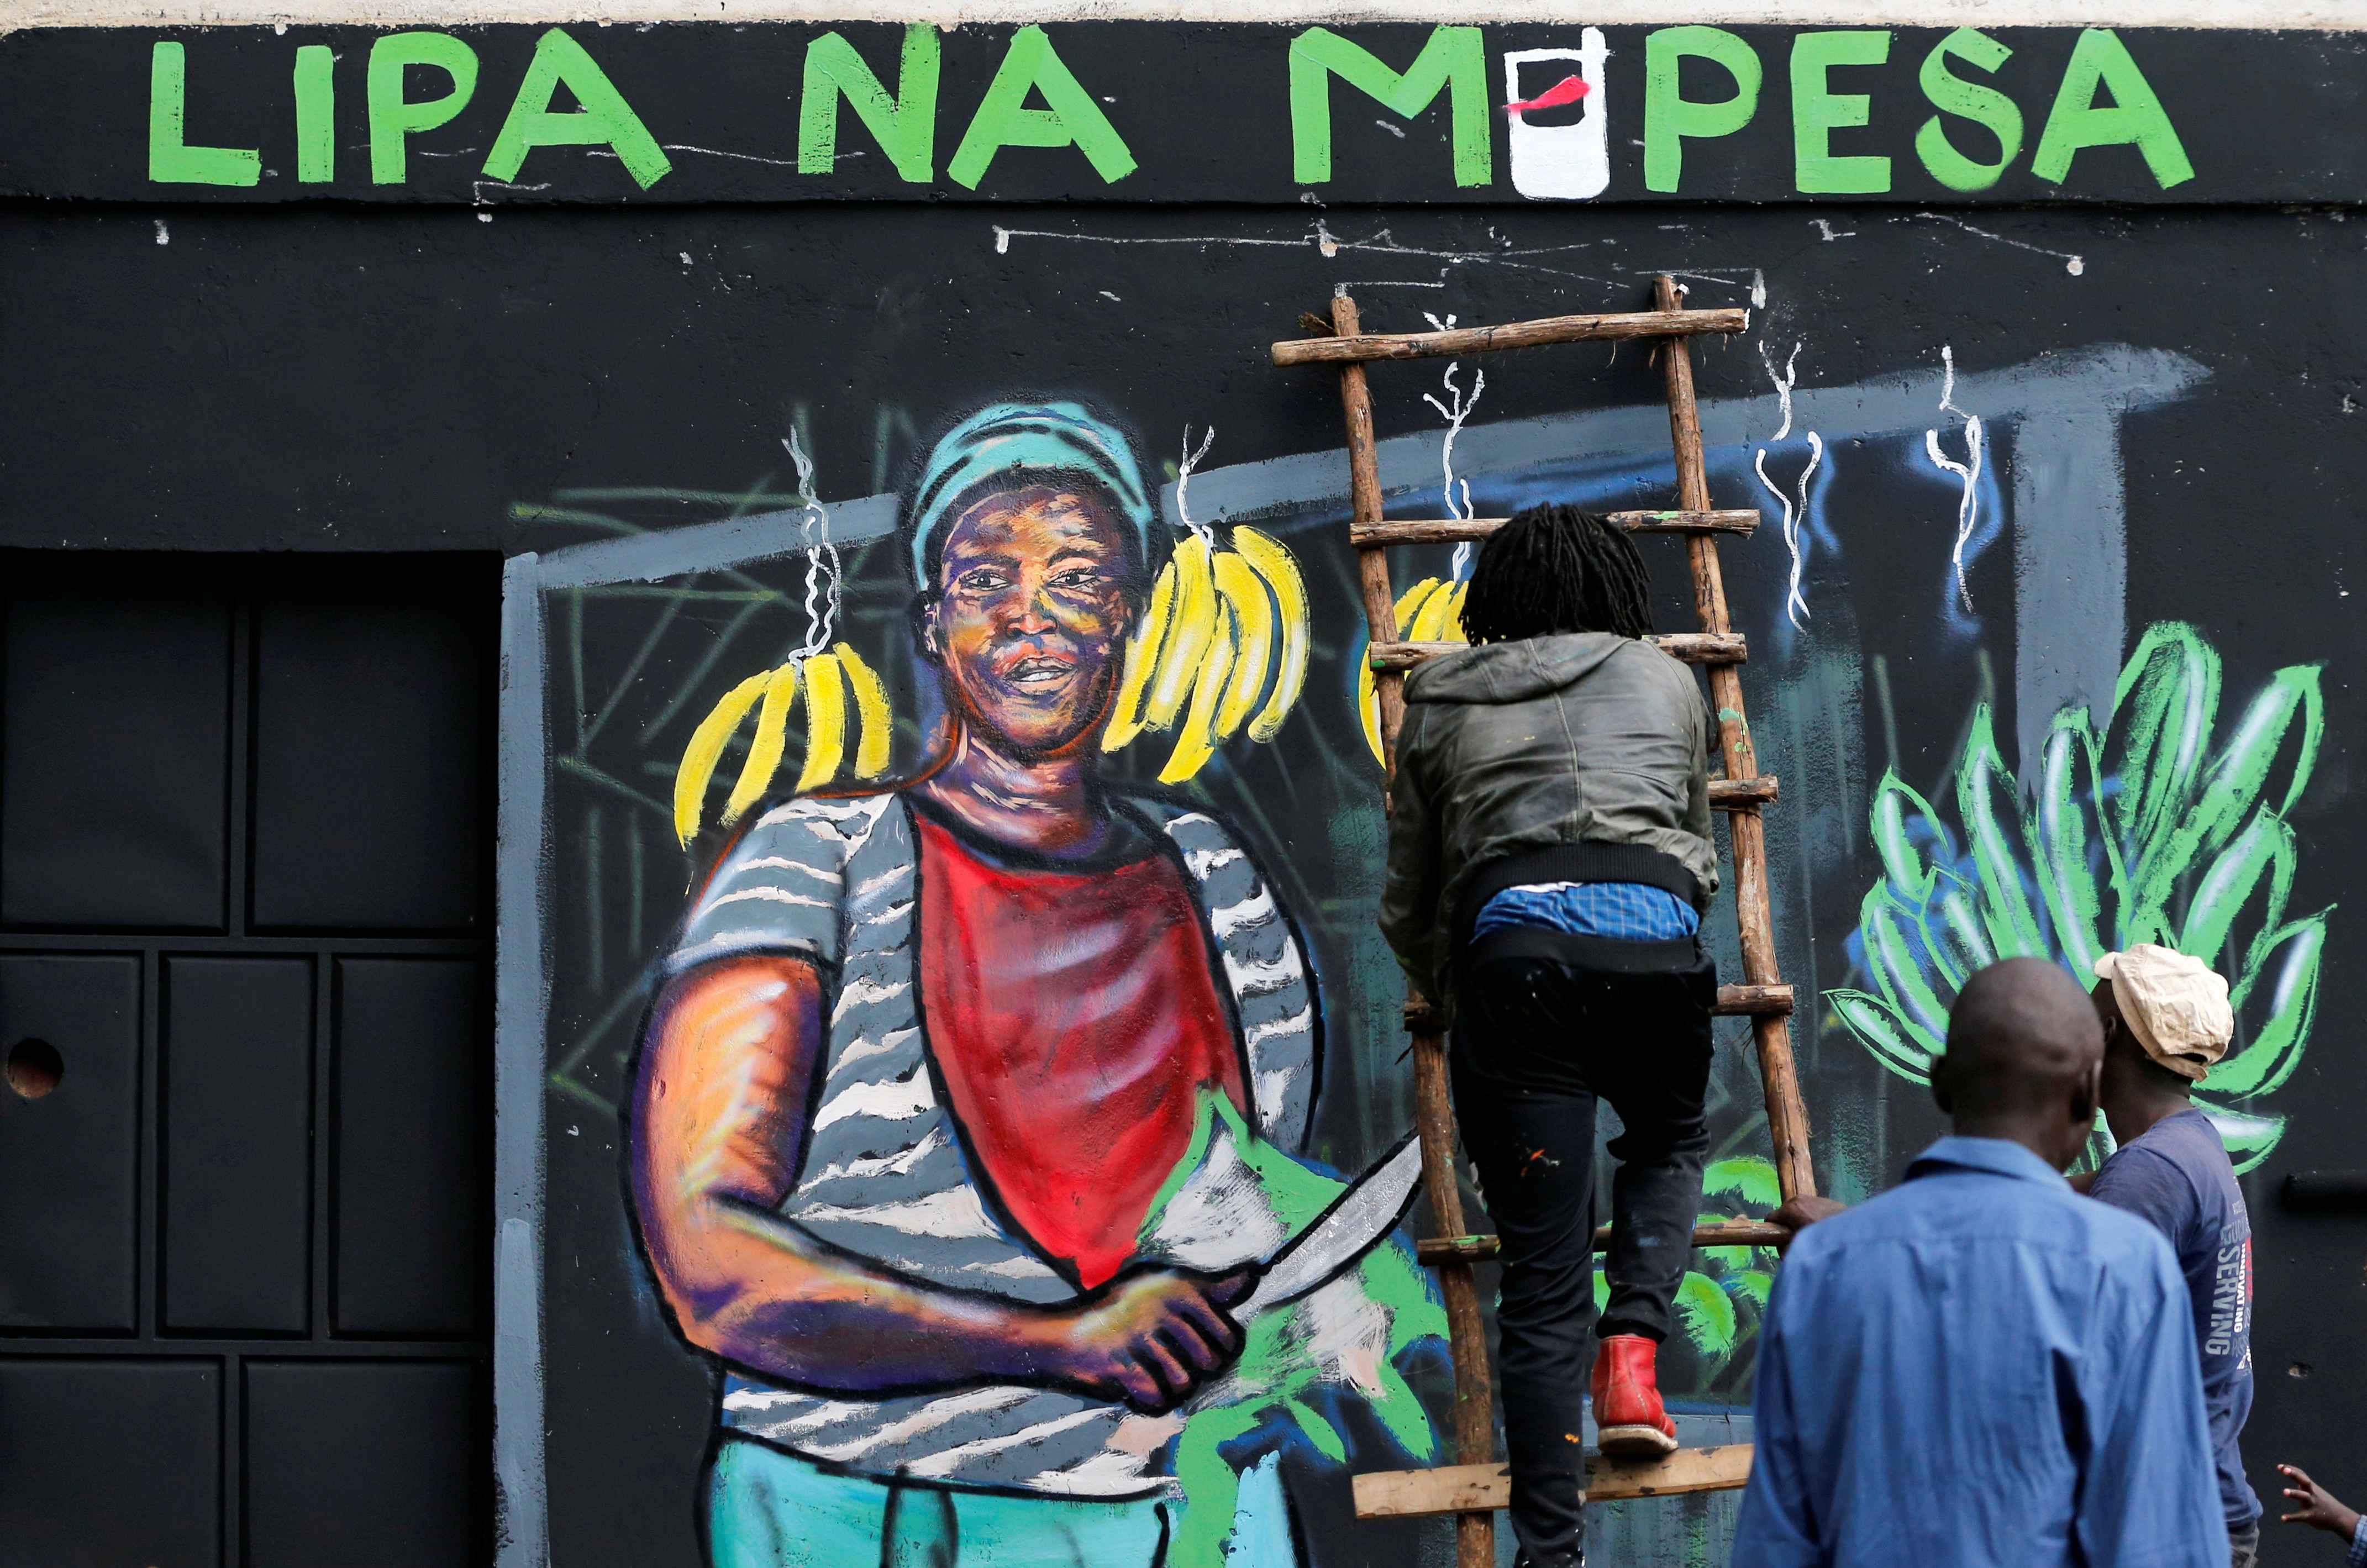 An artist works on a mural advocating for retail M-Pesa mobile phone cashless payments as a measure against the spread of the coronavirus disease (COVID-19) in Nairobi, Kenya April 19, 2020. Picture taken April 19, 2020. REUTERS/Thomas Mukoya - RC288G92R457